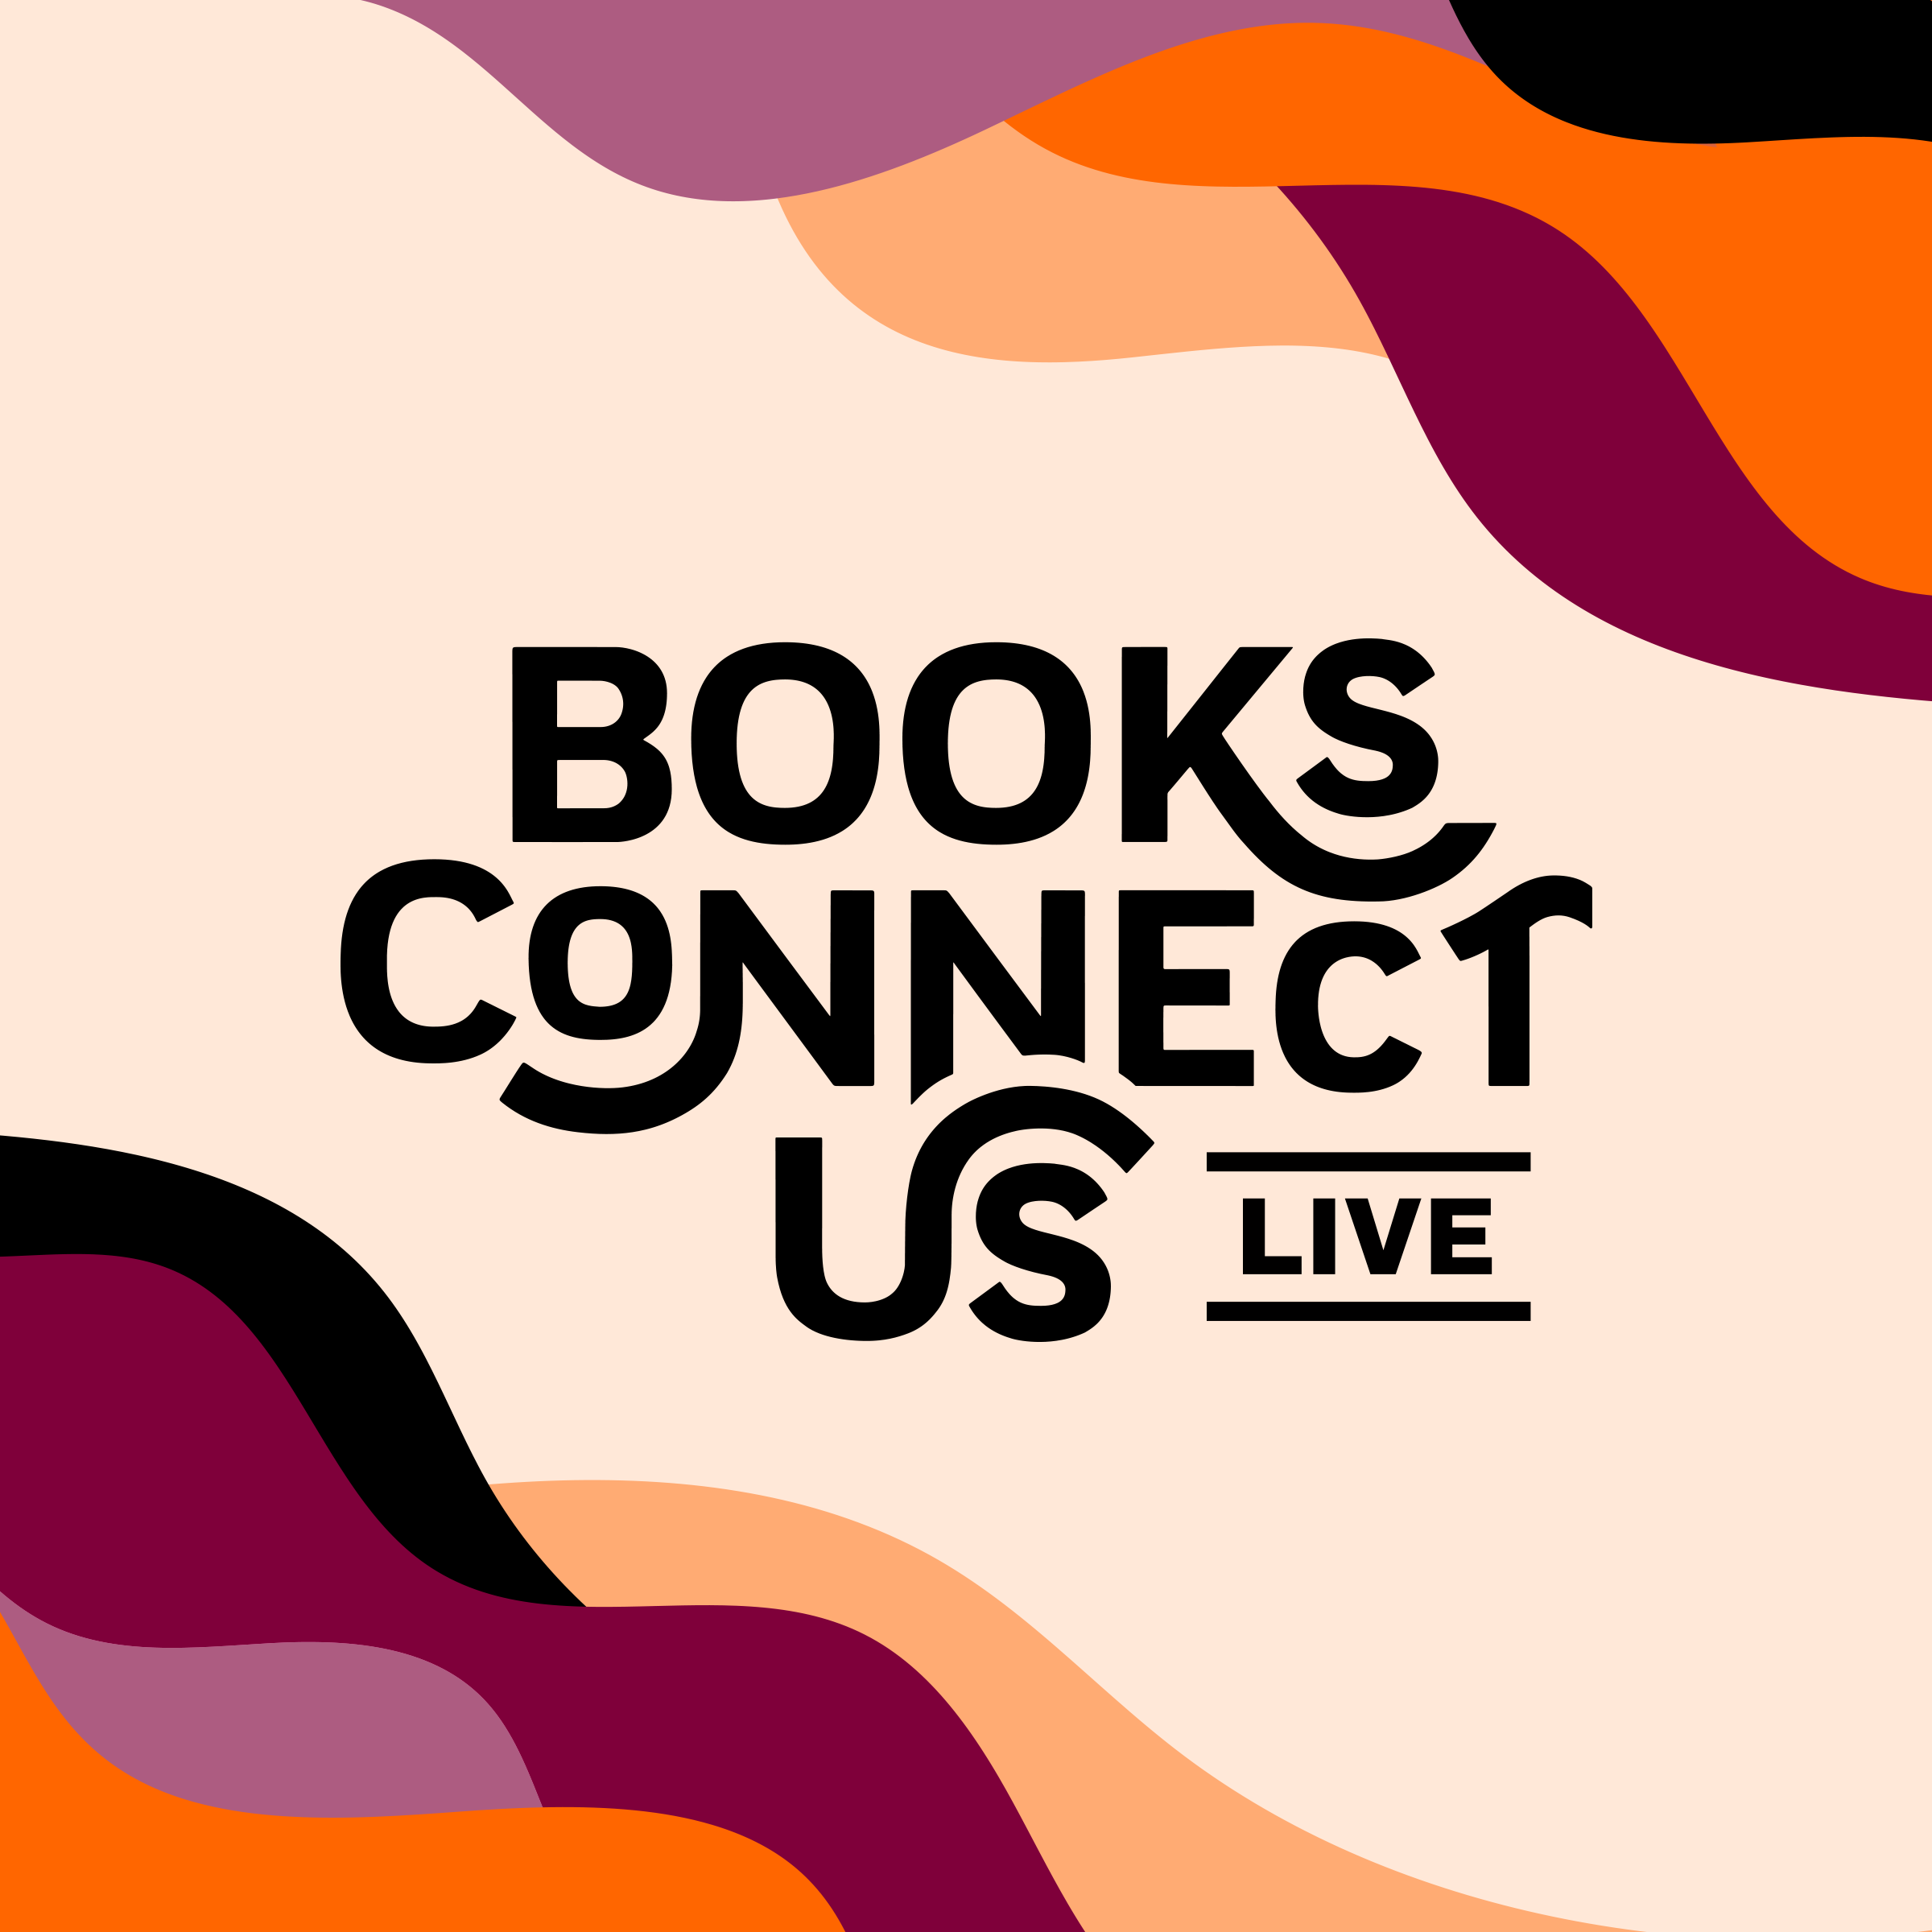 Books Connect Us Live 7/13-7/26